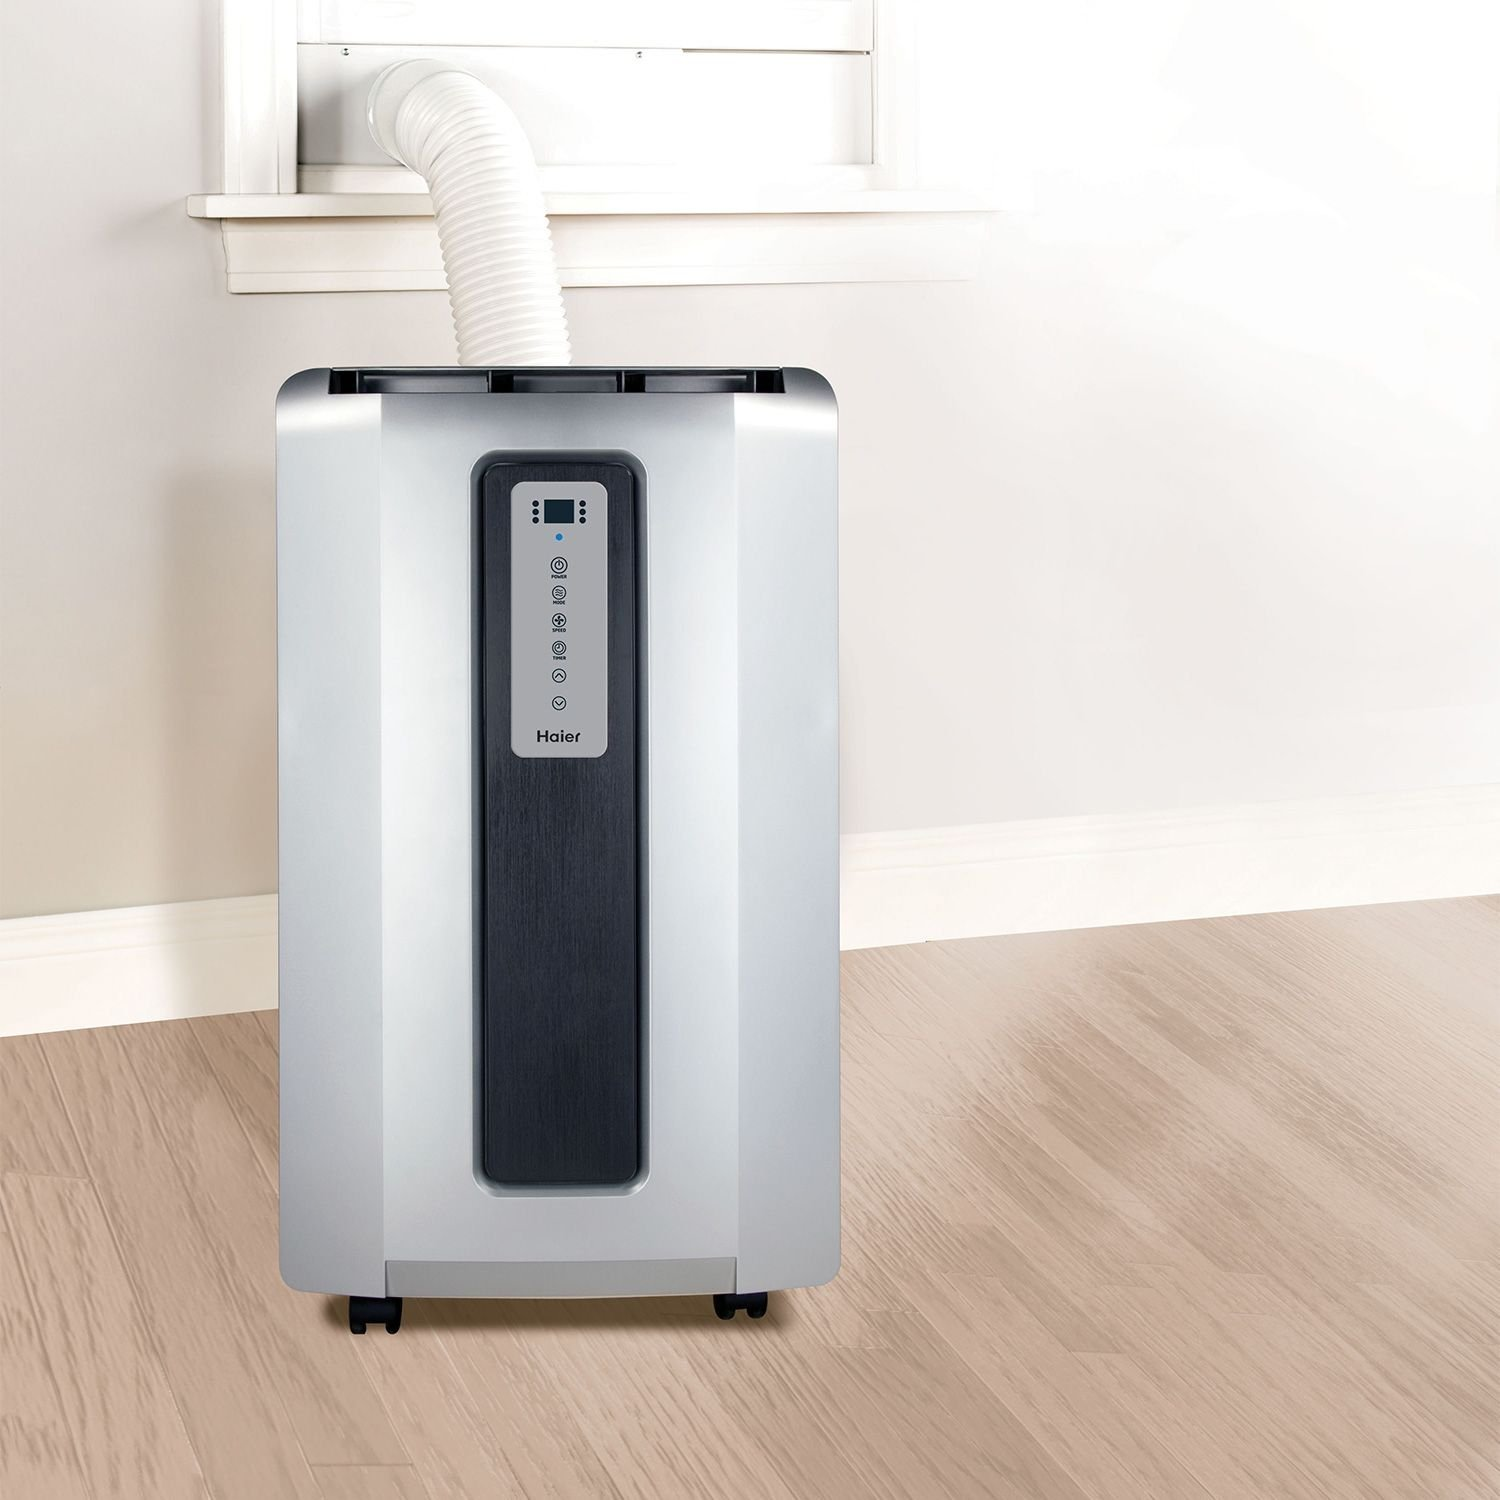 #5C4830 Haier 12 000 BTU Heat/Cool Portable Air Conditioner  Most Effective 12115 Heat & Cool Air Conditioner pictures with 1500x1500 px on helpvideos.info - Air Conditioners, Air Coolers and more